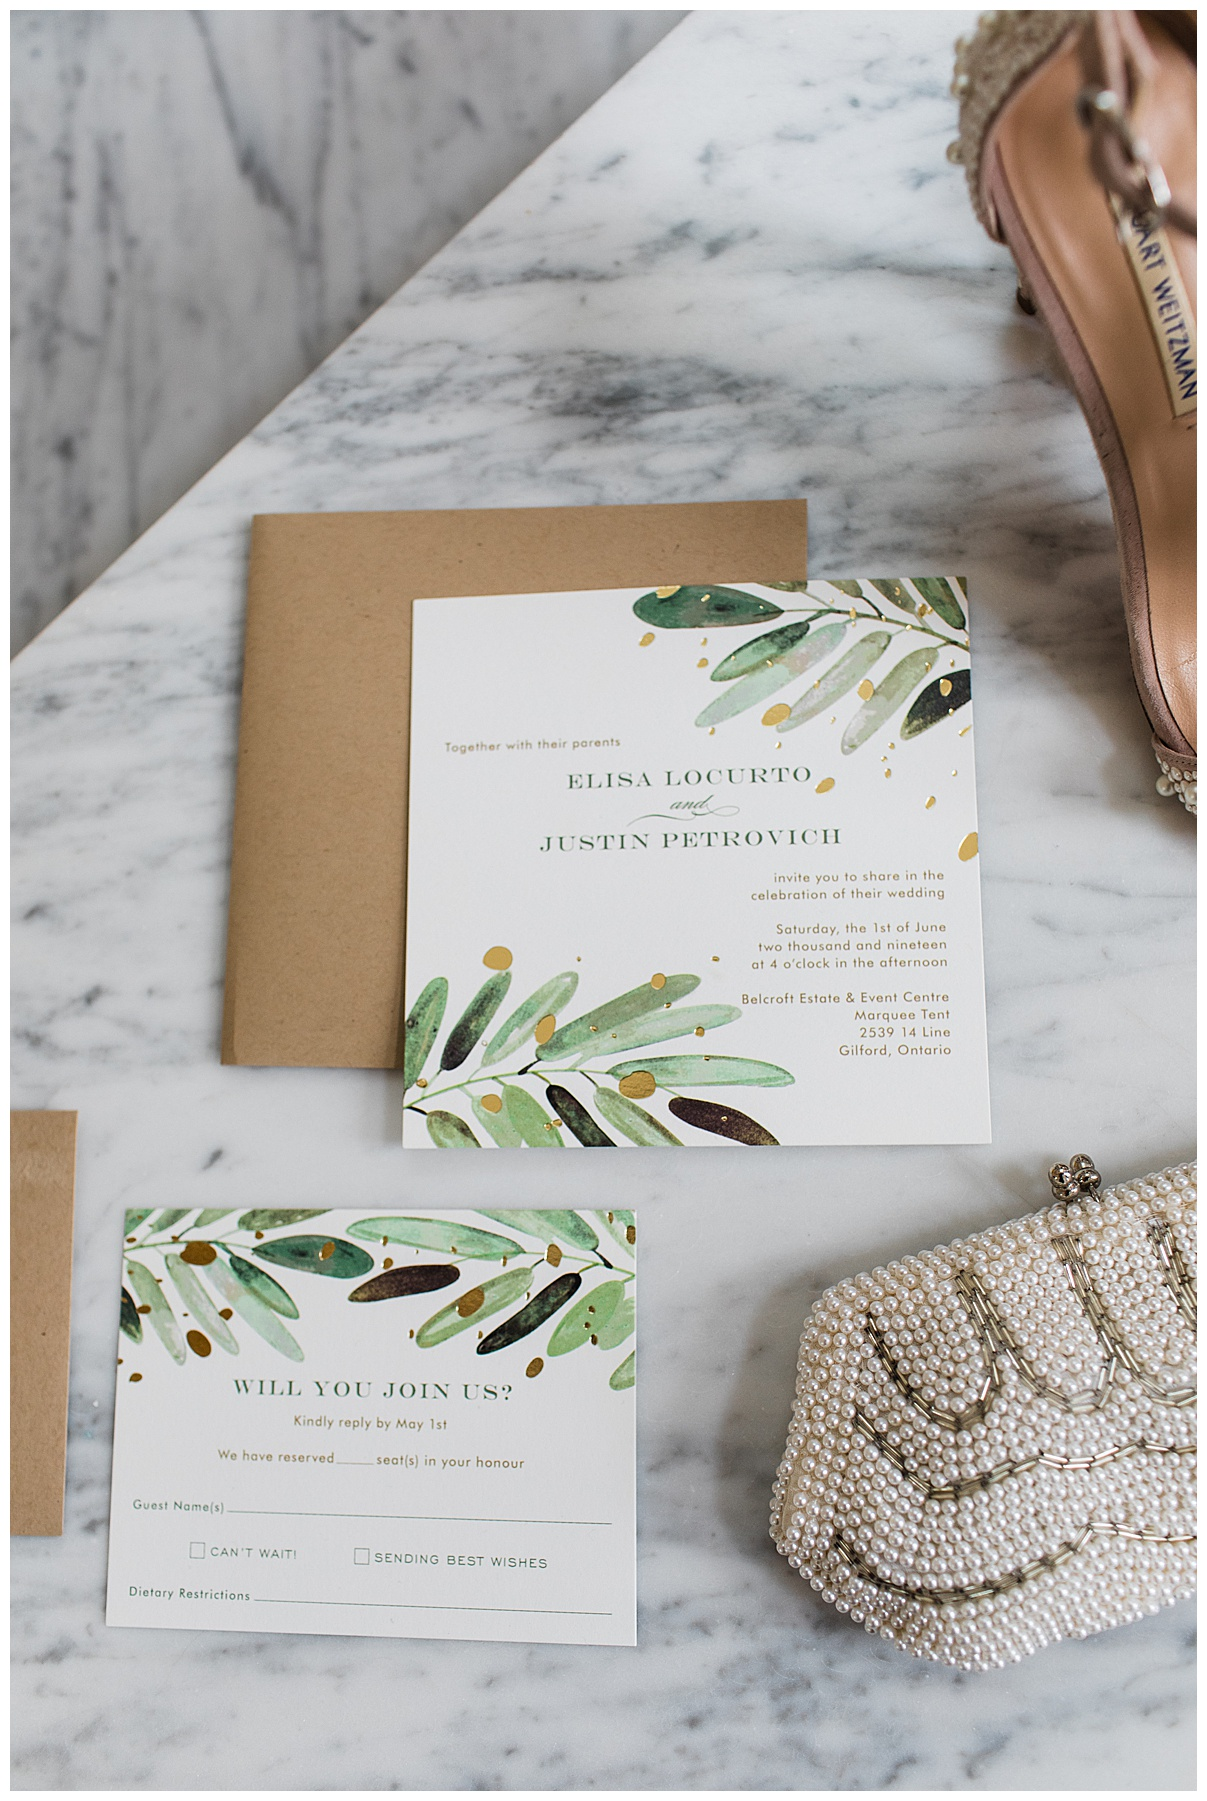 Leafy wedding invitations| Belcroft Estate Wedding| Toronto wedding photographer| Ontario wedding photographer| 3photography